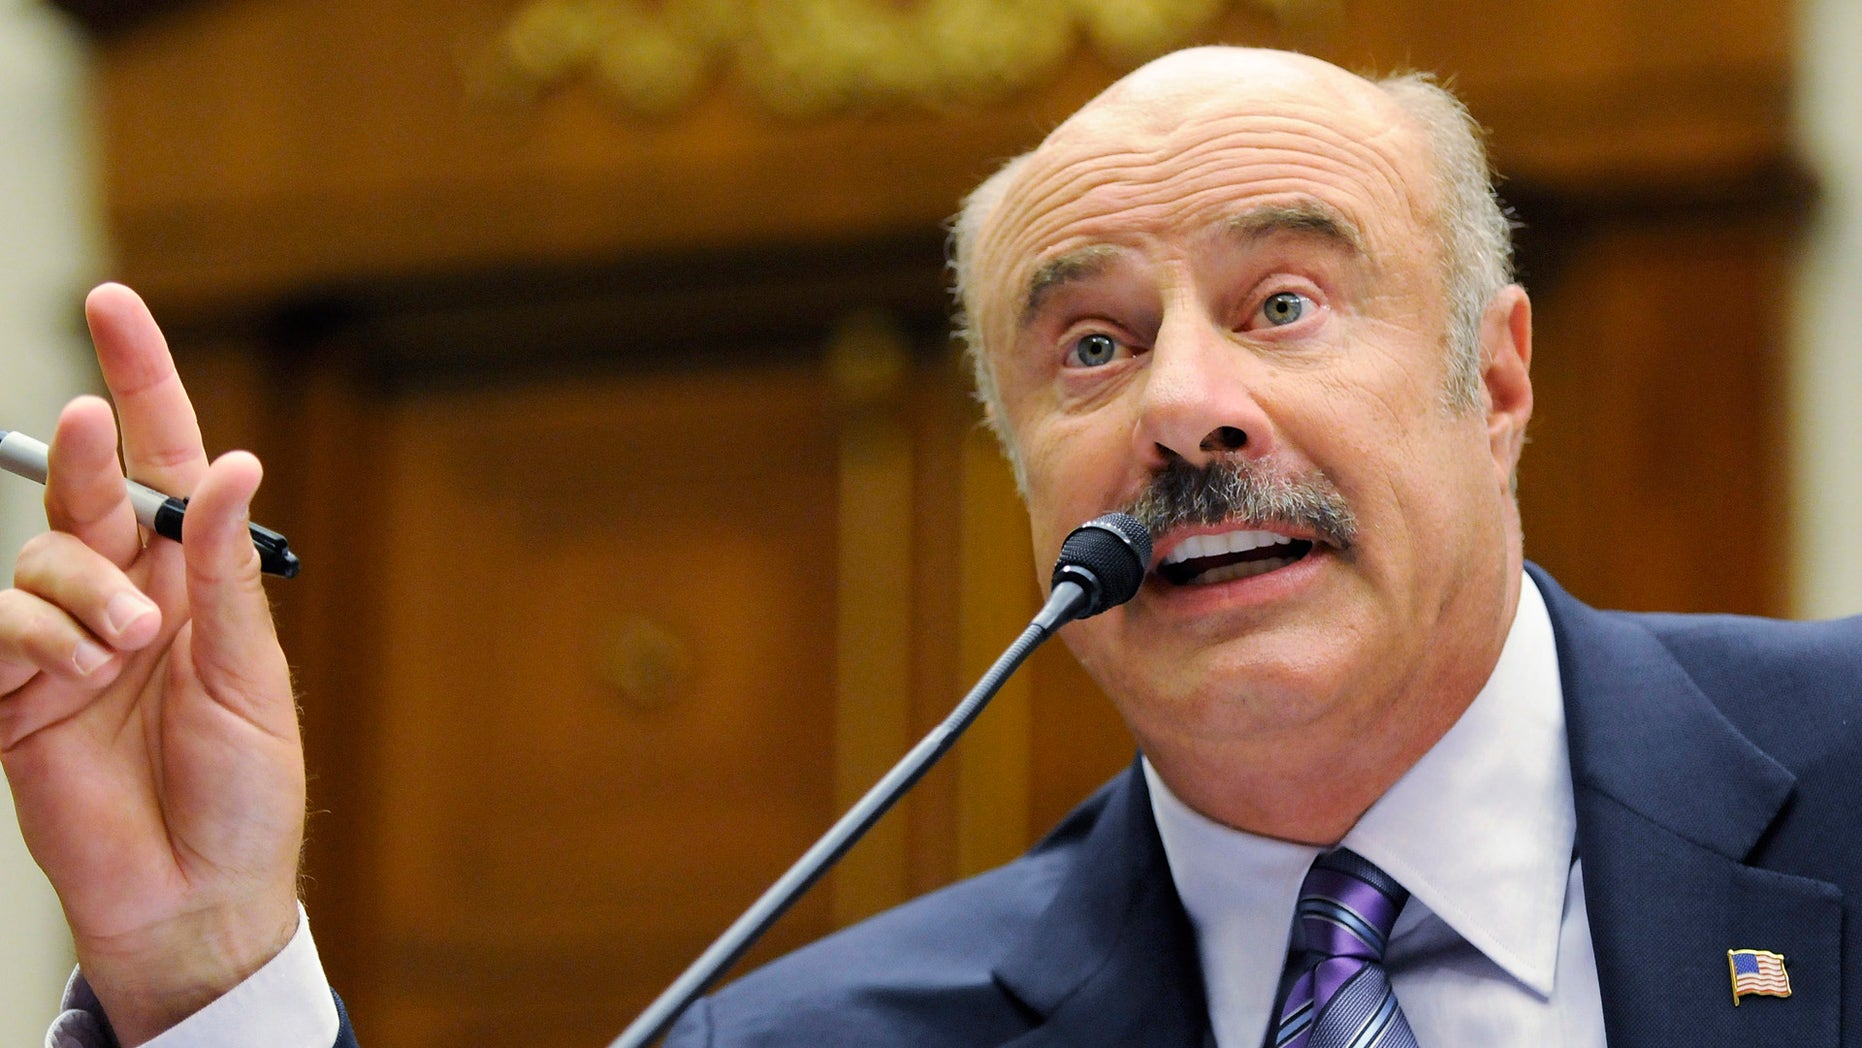 Dr. Phil McGraw, television personality and psychologist, talks about cyber-bullying during a hearing of the Healthy Families and Communities Subcommittee of the U.S. House Committee on Education and Labor, on Capitol Hill in Washington, June 24, 2010.  REUTERS/Jonathan Ernst (UNITED STATES - Tags: ENTERTAINMENT POLITICS) - RTR2FOBM